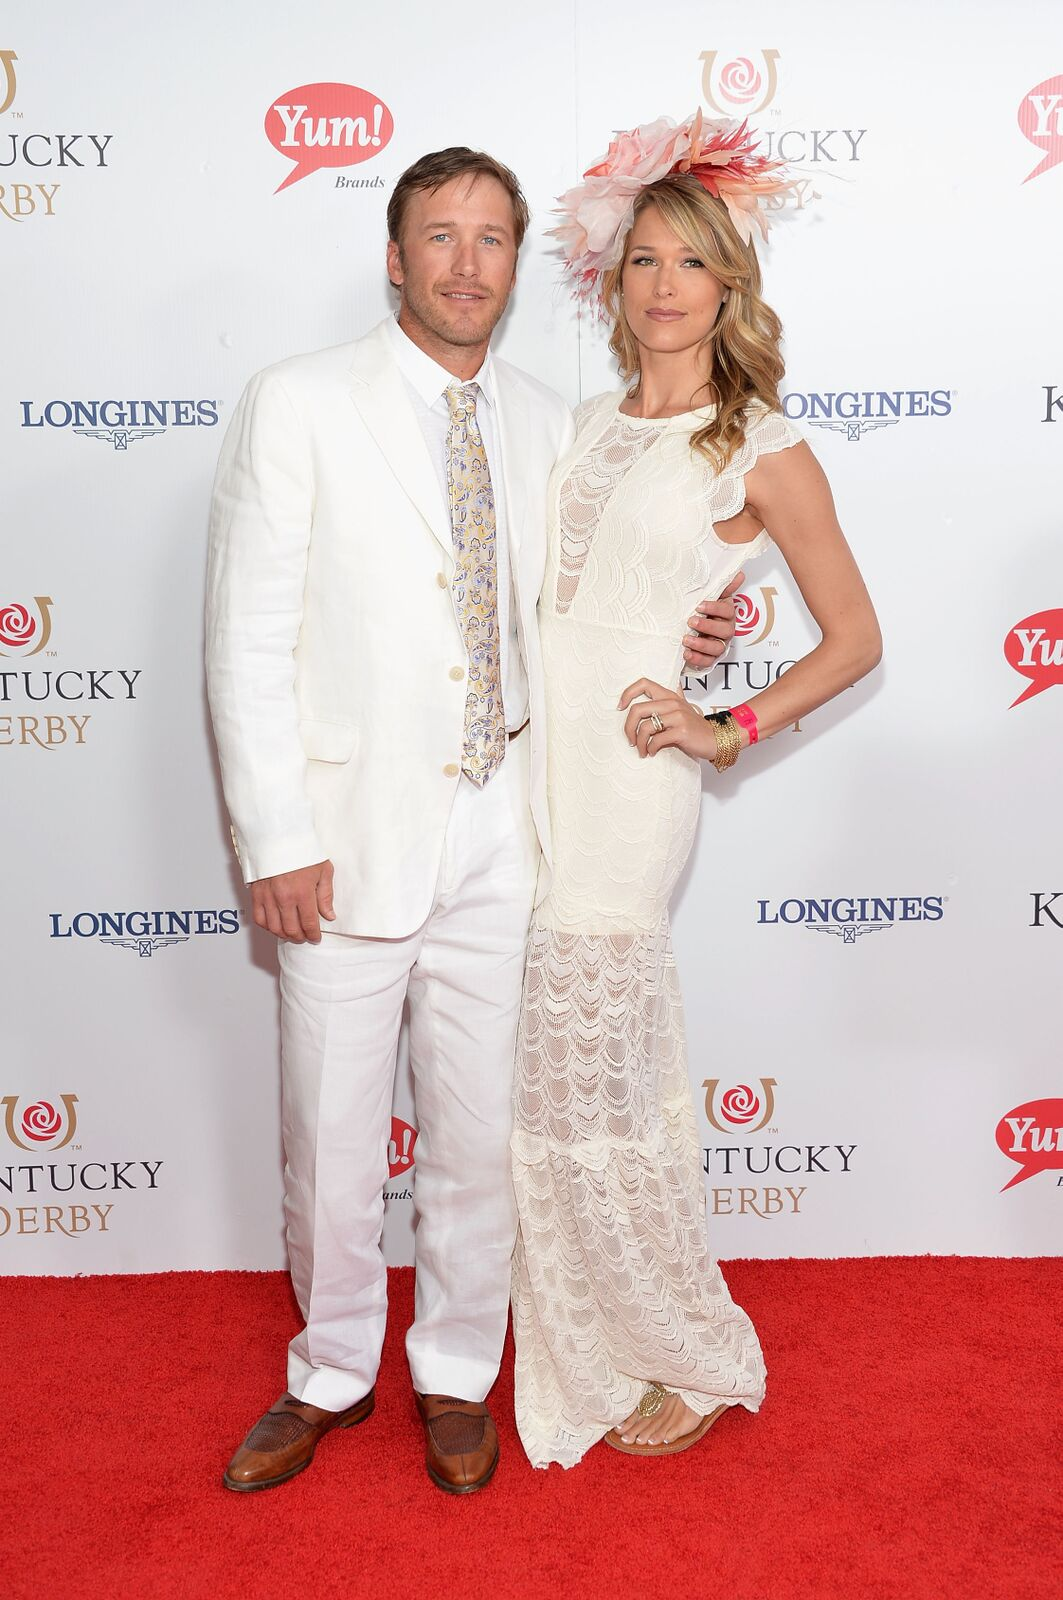 Bode Miller (L) and Morgan Miller attend 140th Kentucky Derby at Churchill Downs on May 3, 2014 in Louisville, Kentucky | Photo: Getty Images